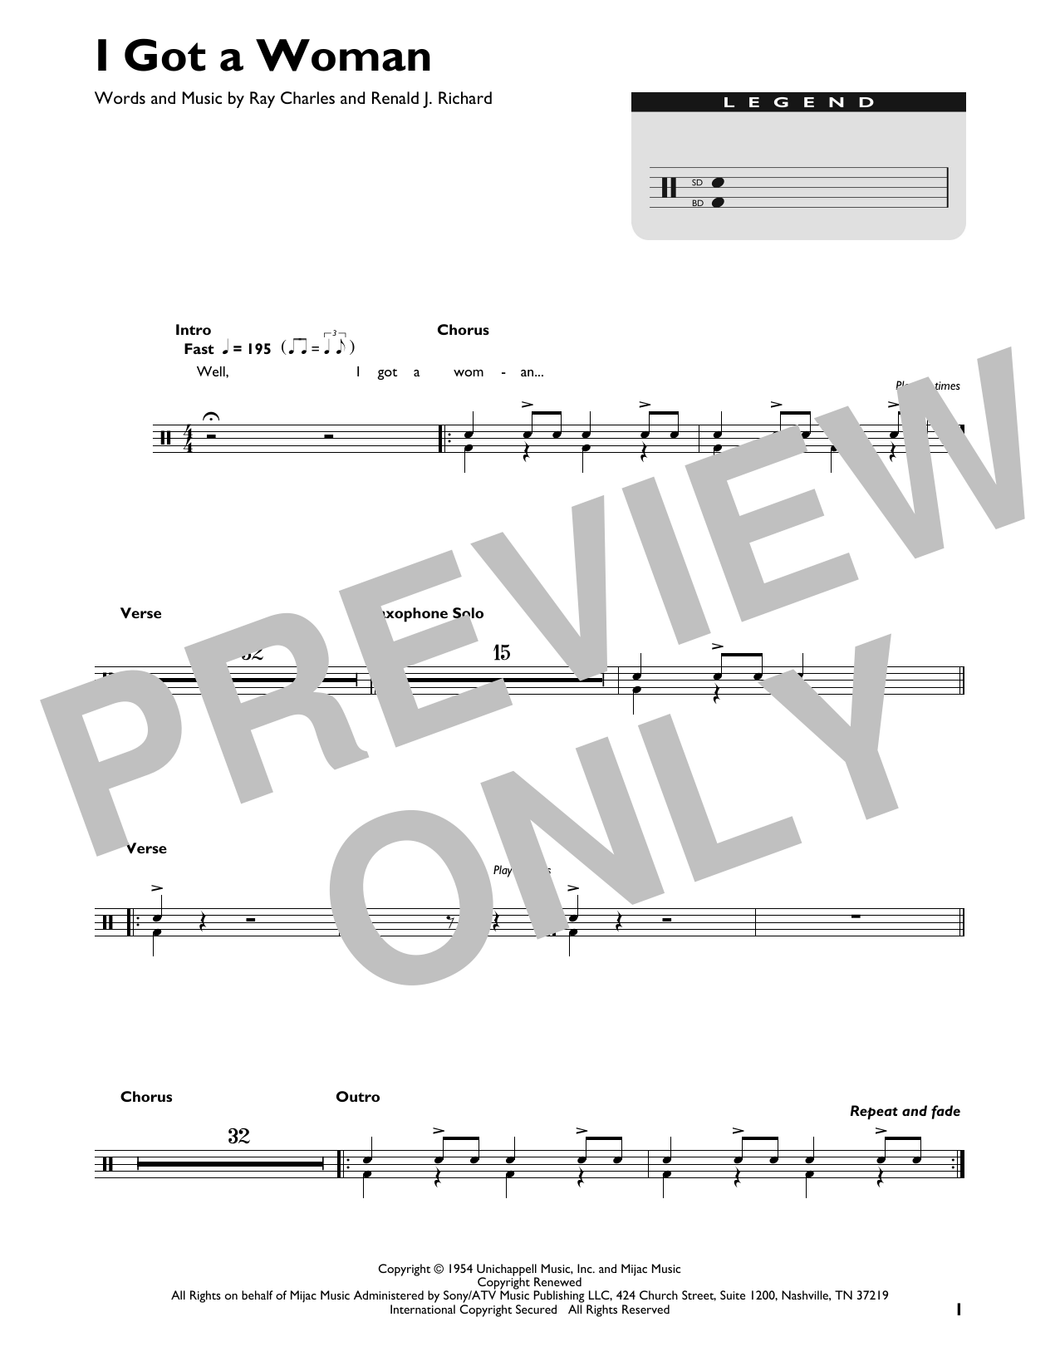 I Got A Woman - Ray Charles - Full Drum Transcription / Drum Sheet Music - SheetMusicDirect DT